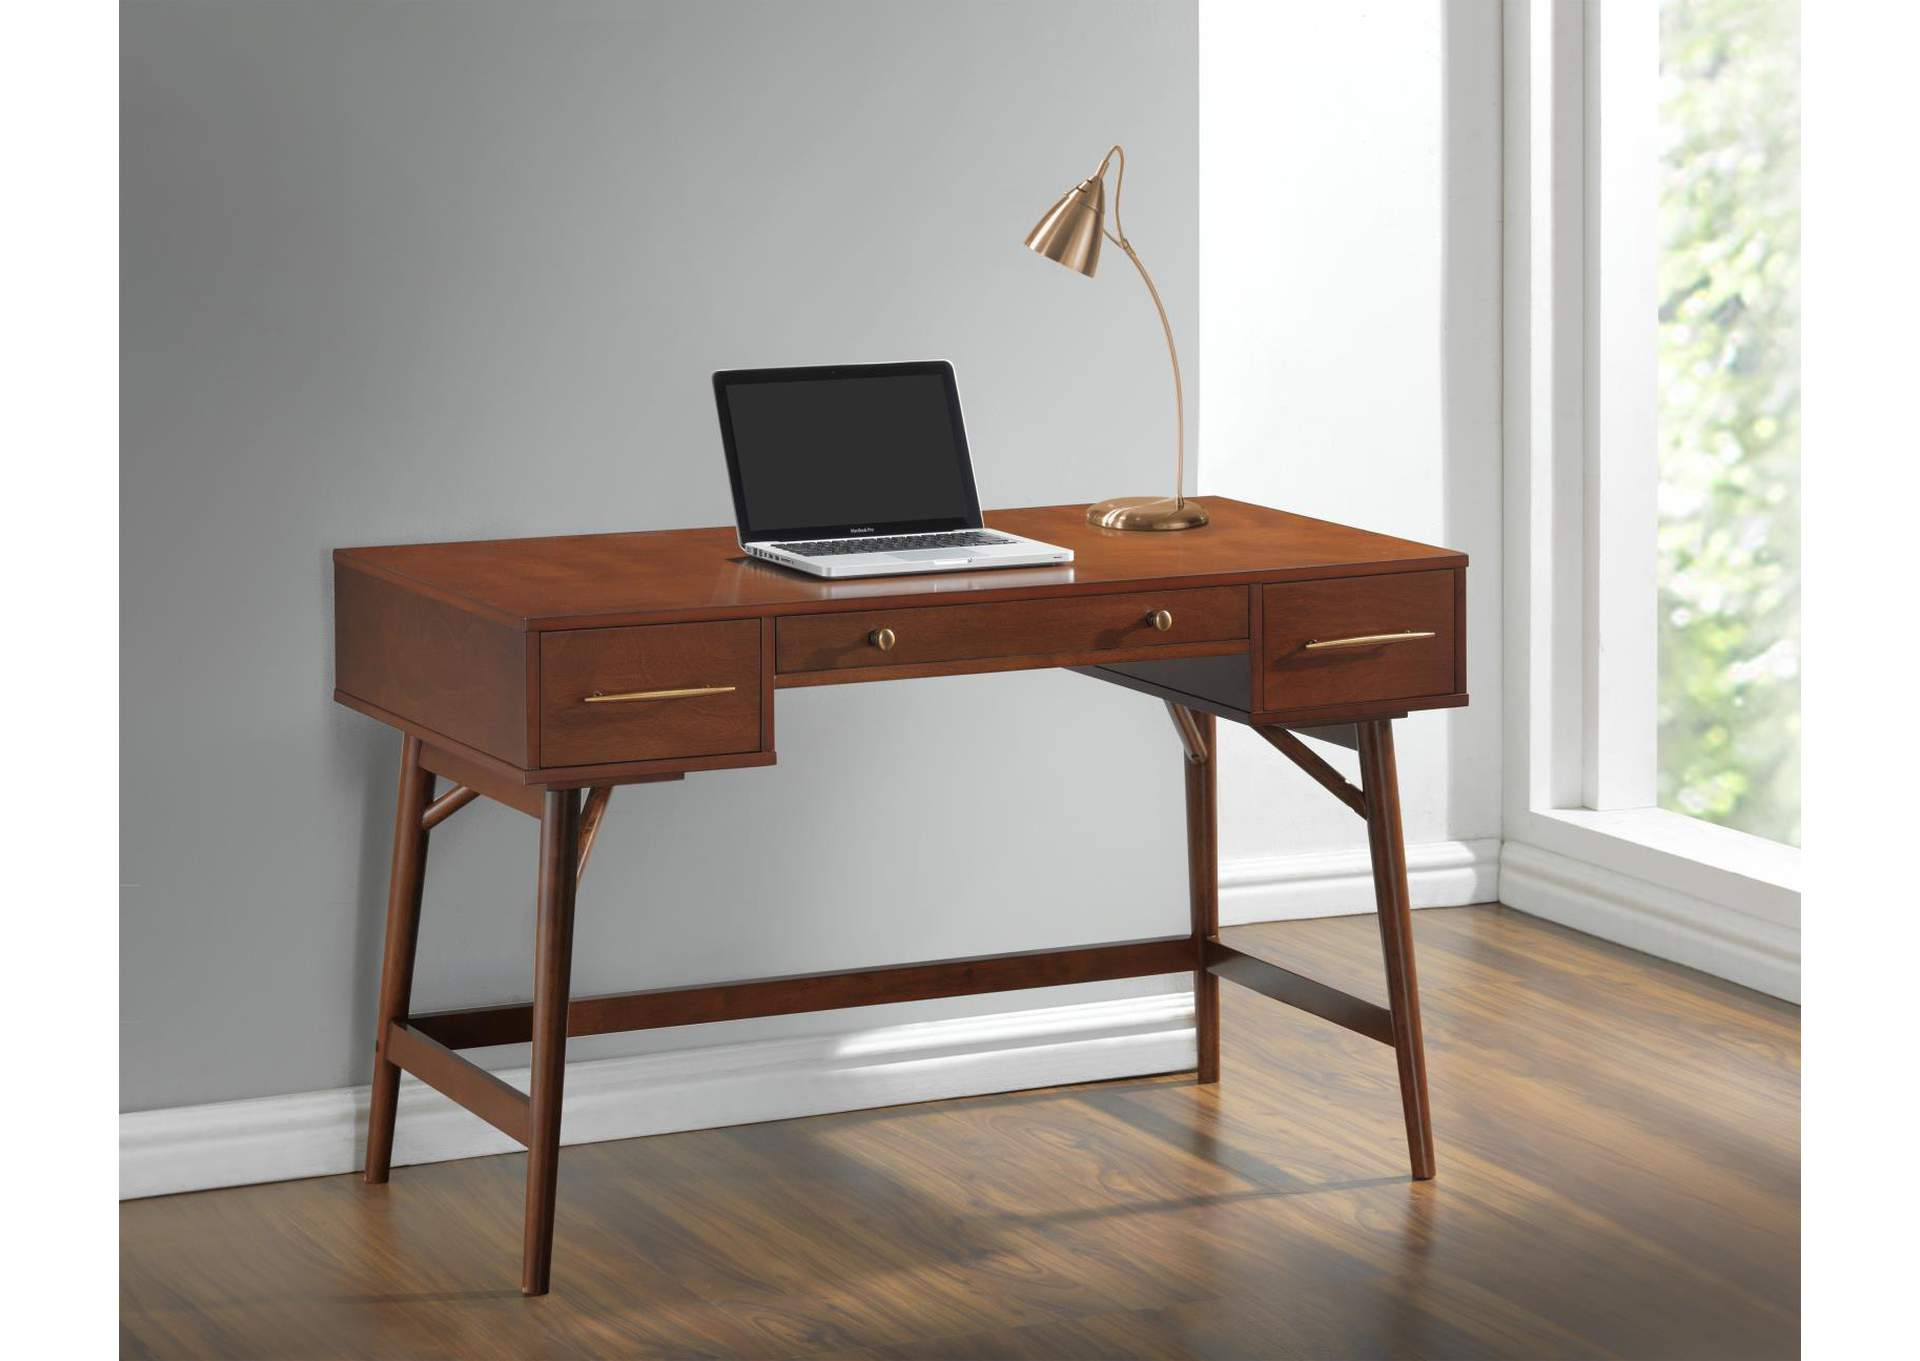 Irish Coffee Transitional Walnut Writing Desk,Coaster Furniture